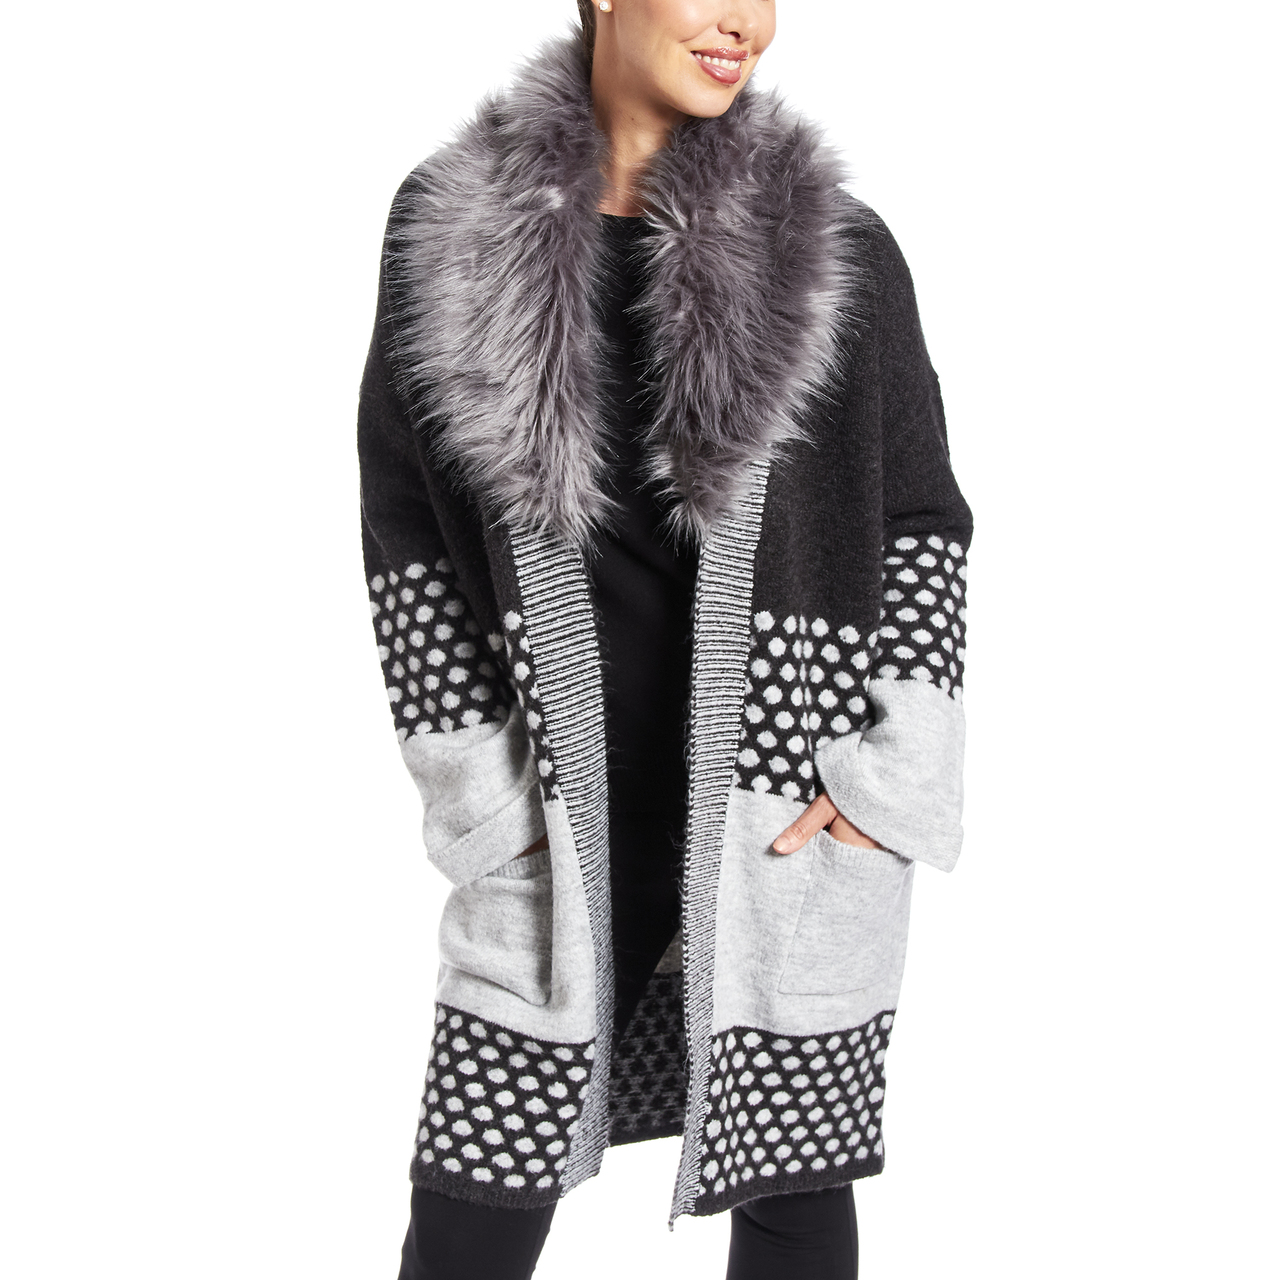 Removable Faux Fur Collar Coatigan in Charcoal Grey Combo